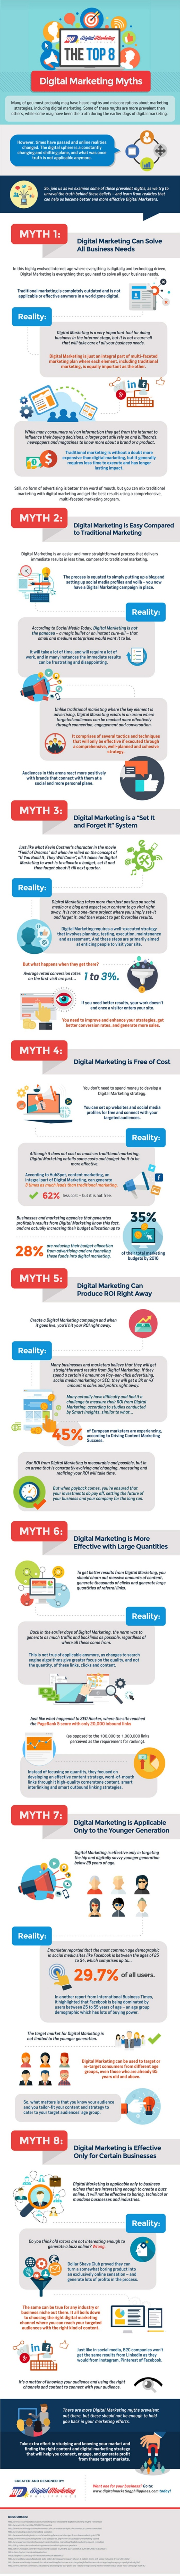 marketing myths info